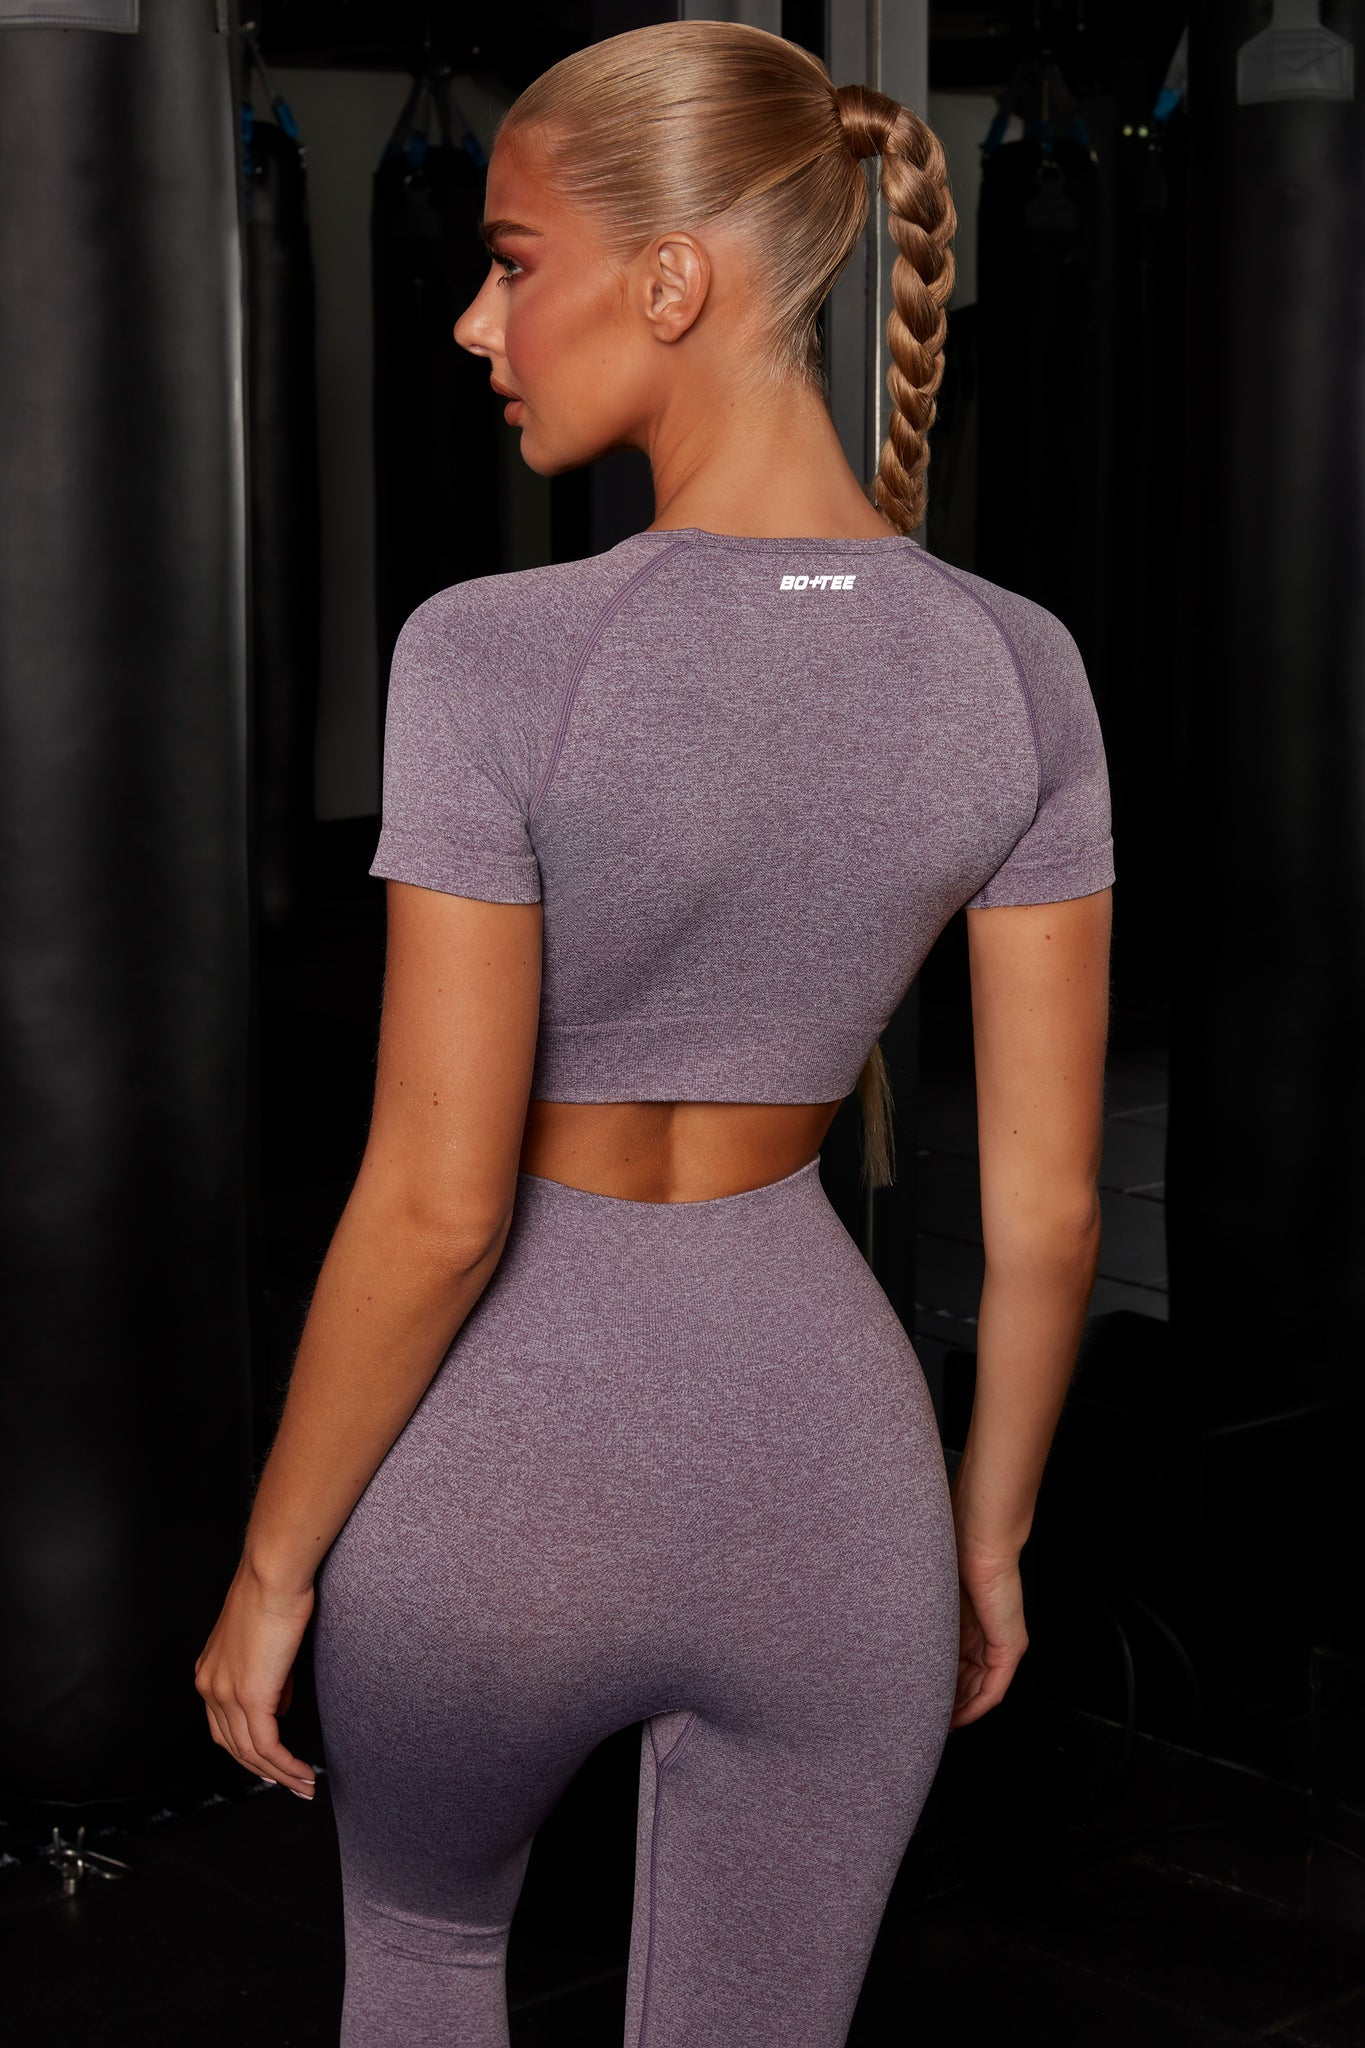 Plain purple melange round neck crop top with ribbed underband, reflective branding and short sleeves. Image 3 of 6.